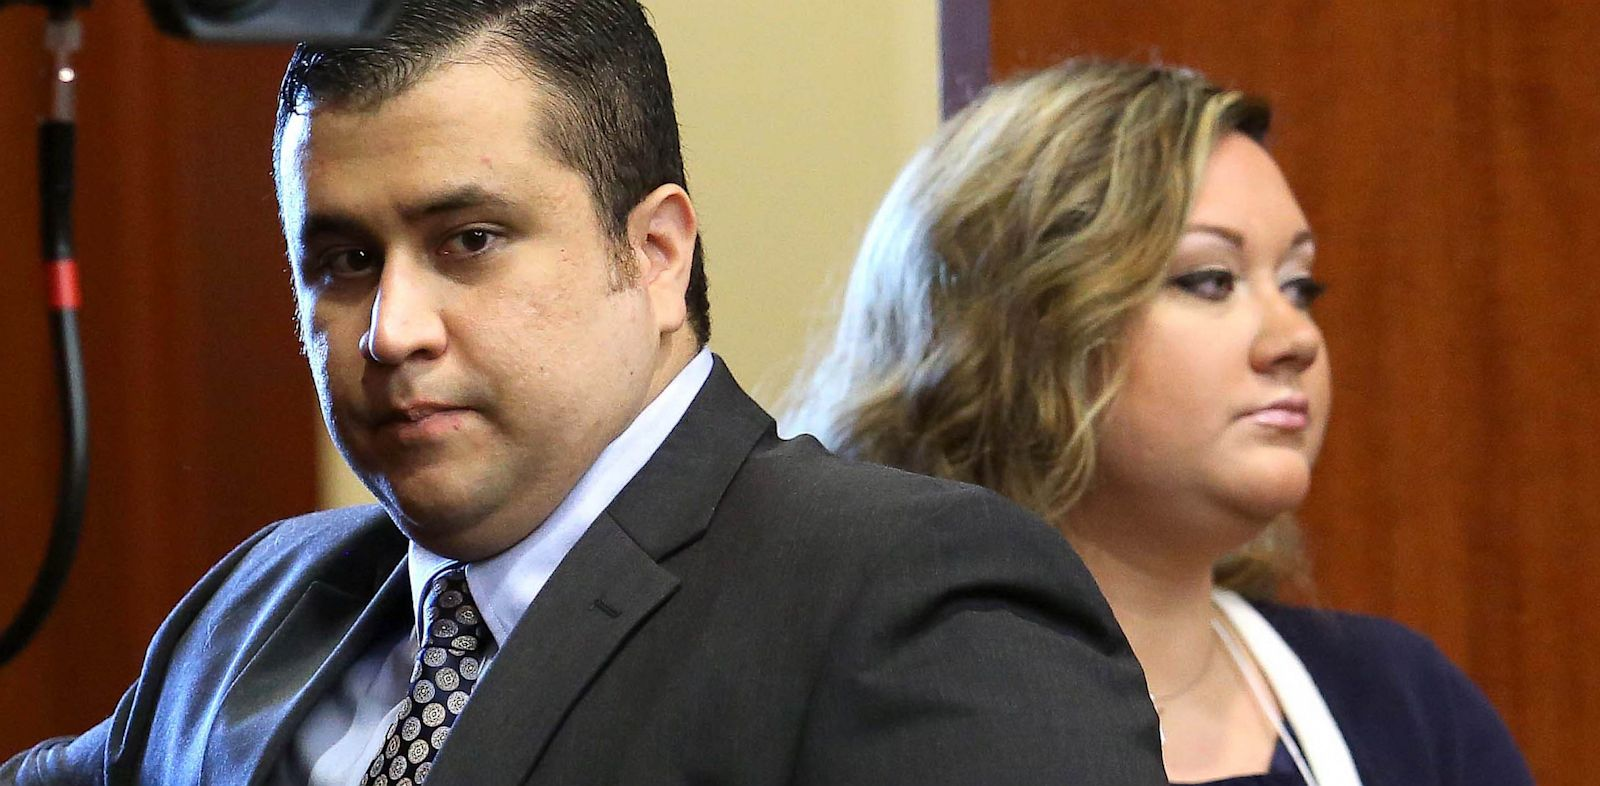 PHOTO: George Zimmerman and Shellie